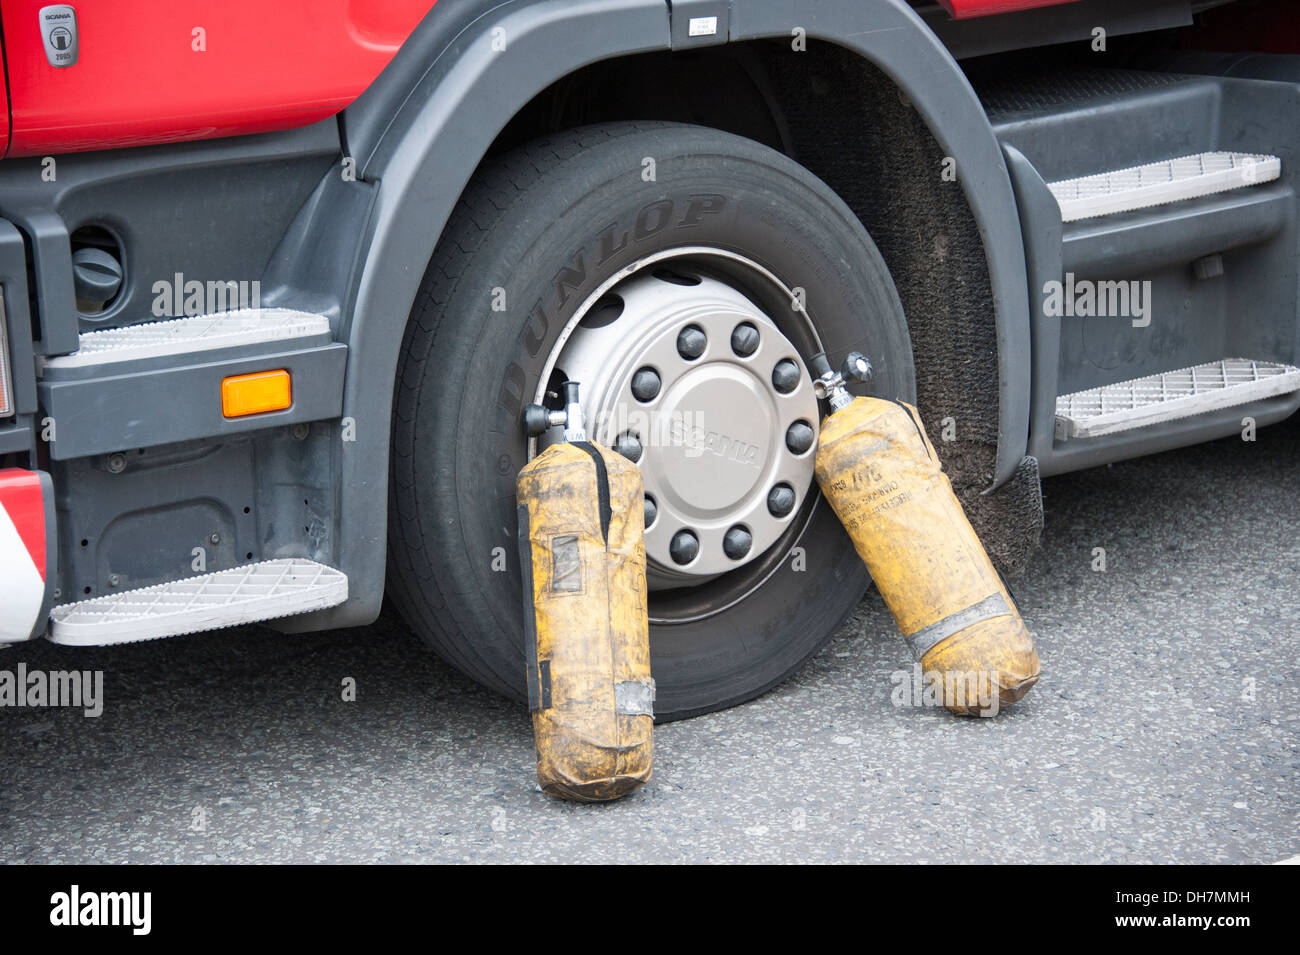 2 BA Cylinders against wheel of Fire Engine Truck - Stock Image